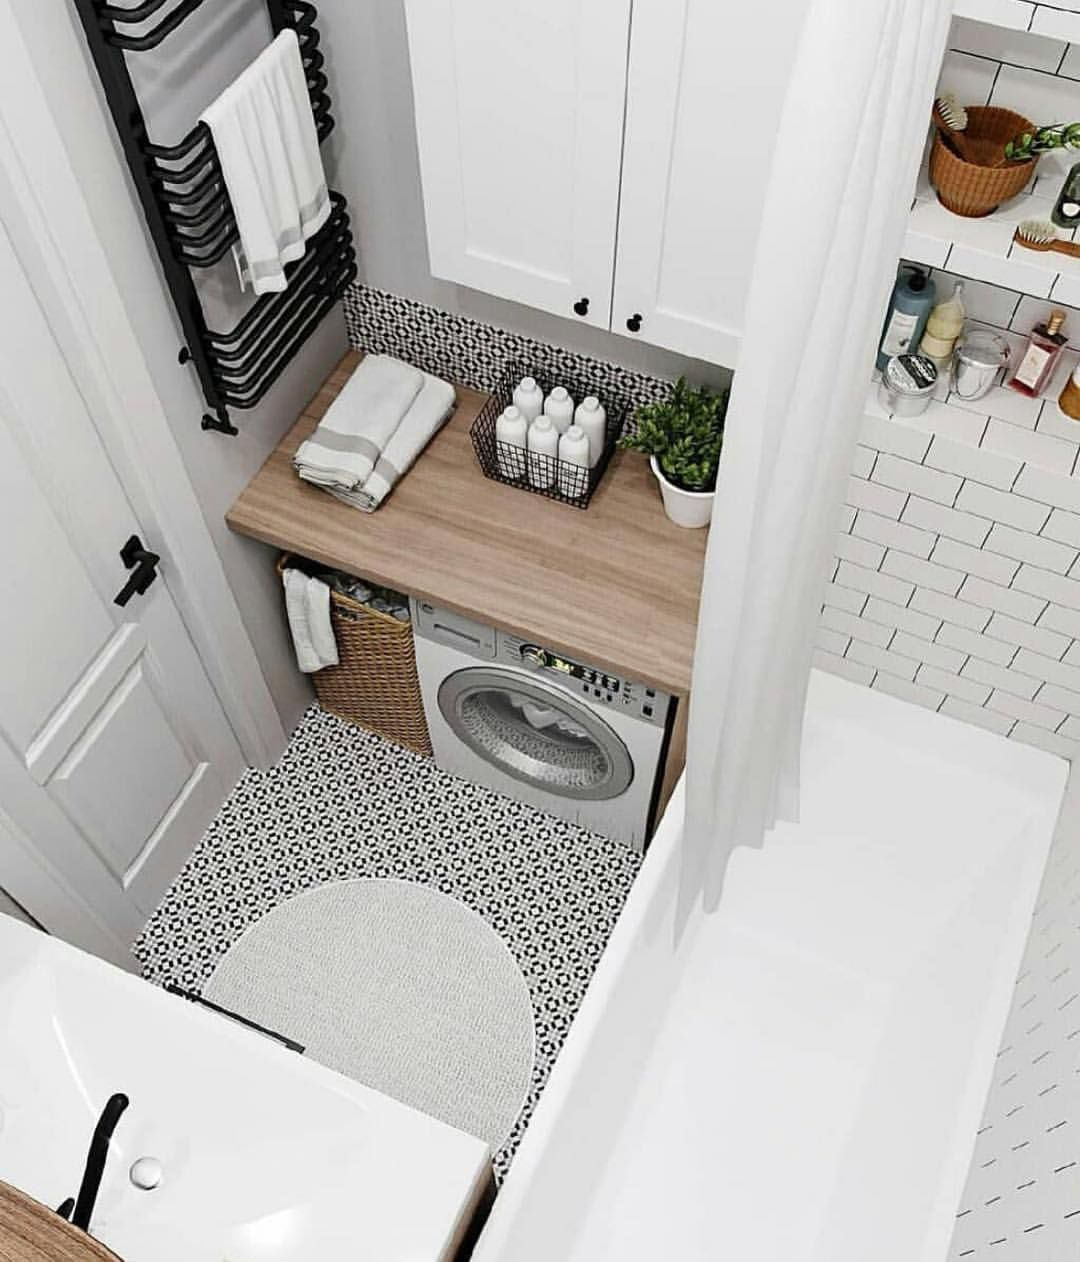 Stylish Ways To Decorate Small Bathroom Ideas 6x6 Tips For 2019 Tiny House Bathroom Small Bathroom Ideas On A Budget Bright Bathroom